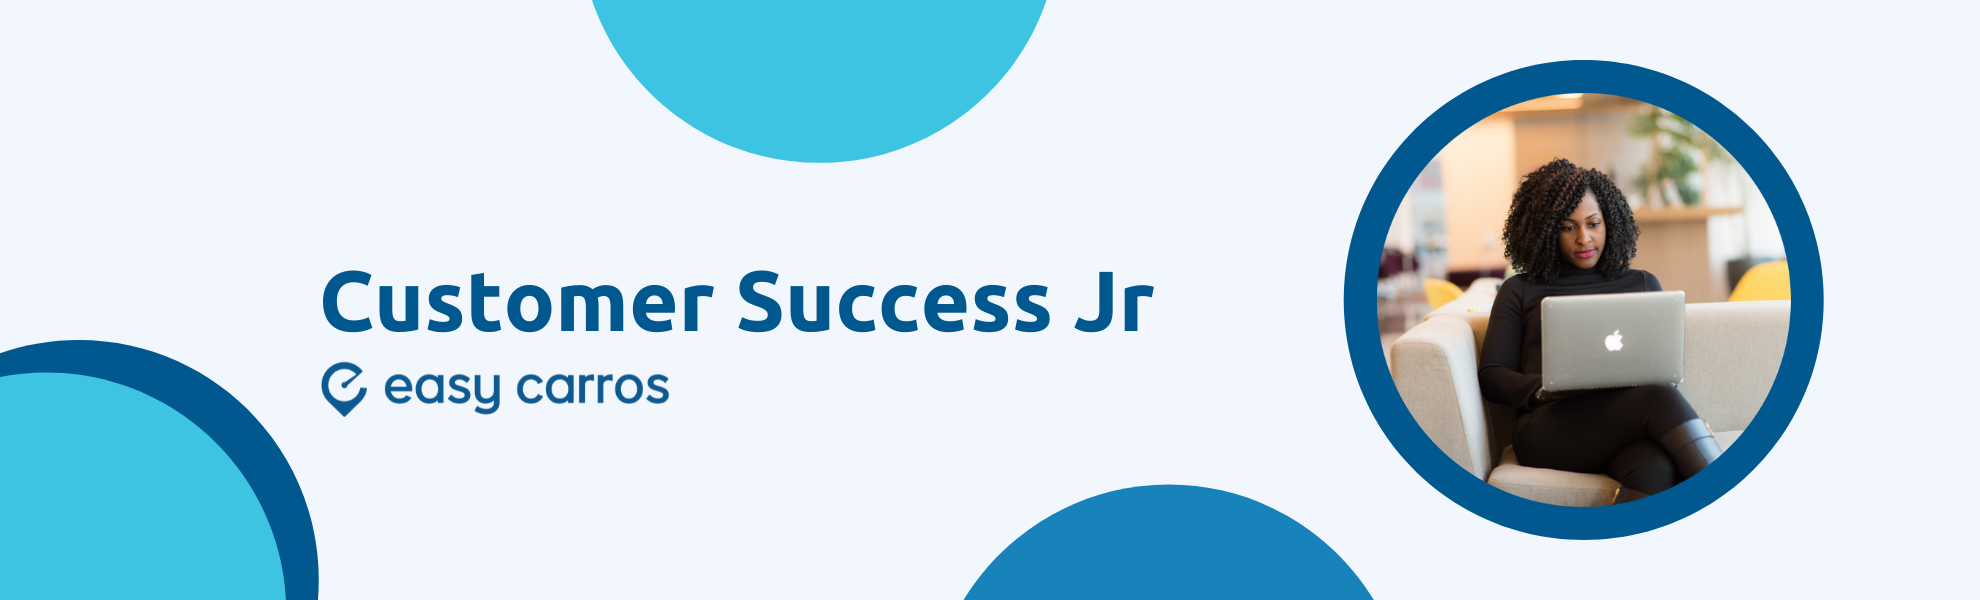 Customer Success Jr (vaga futura)